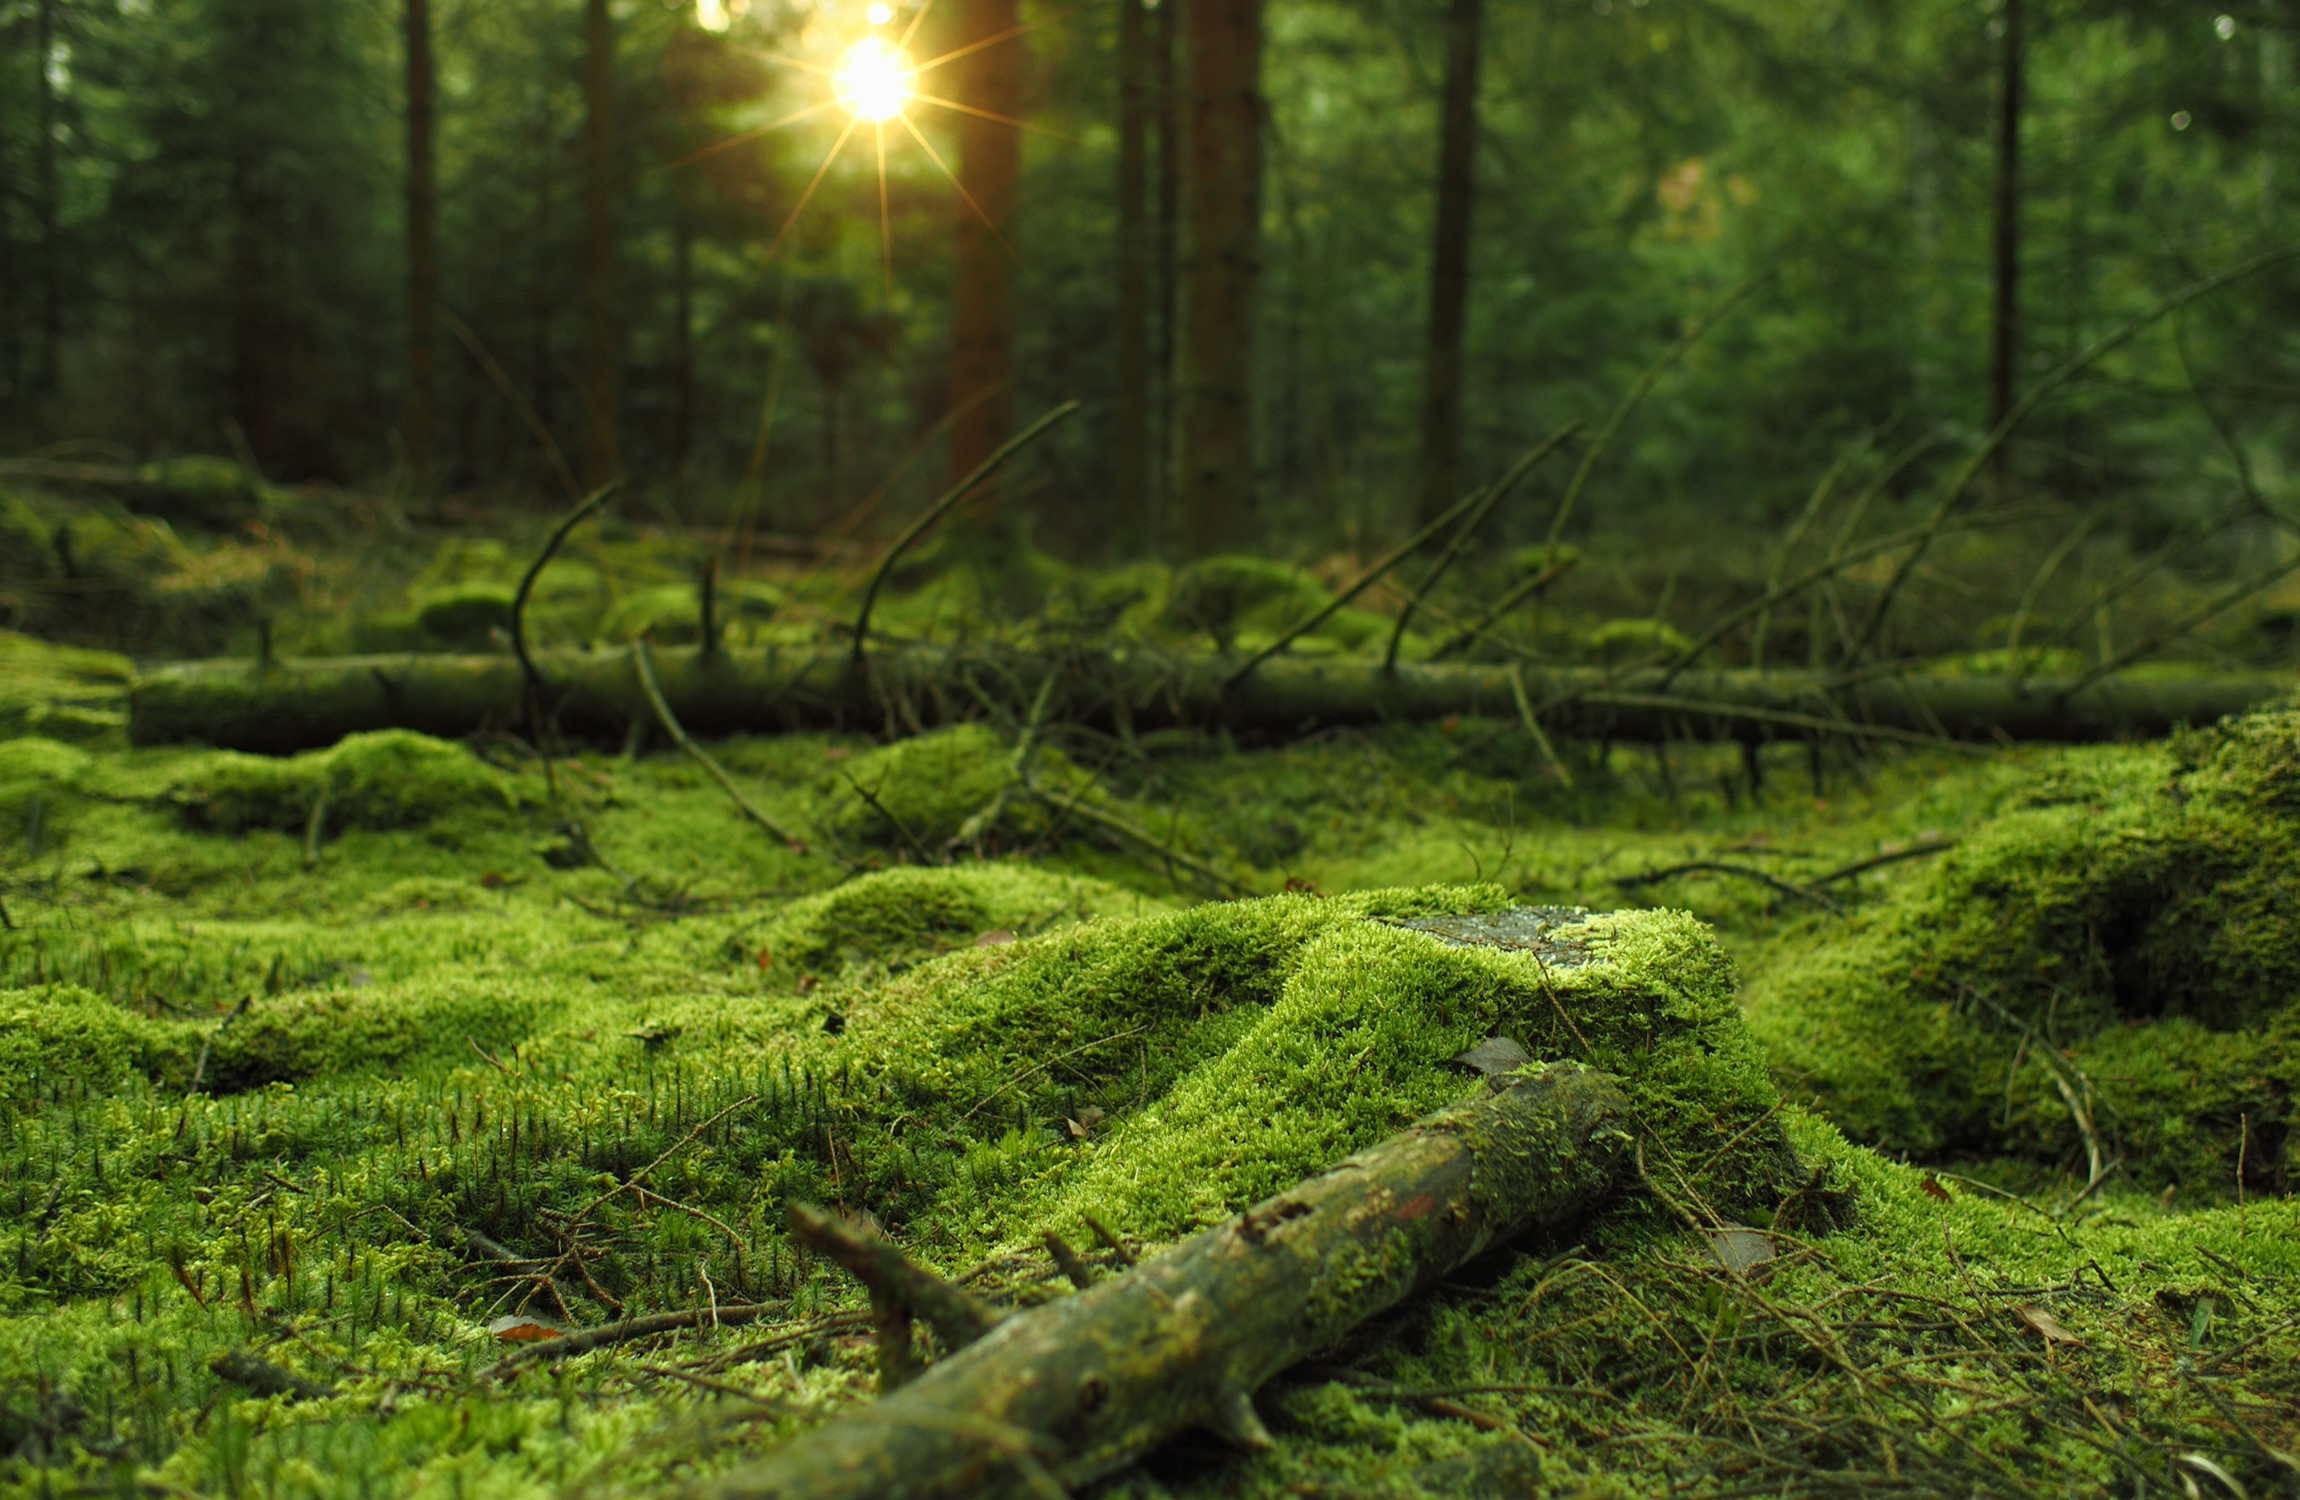 2300x1500 Mossy forest HD wallpaper. Download ...